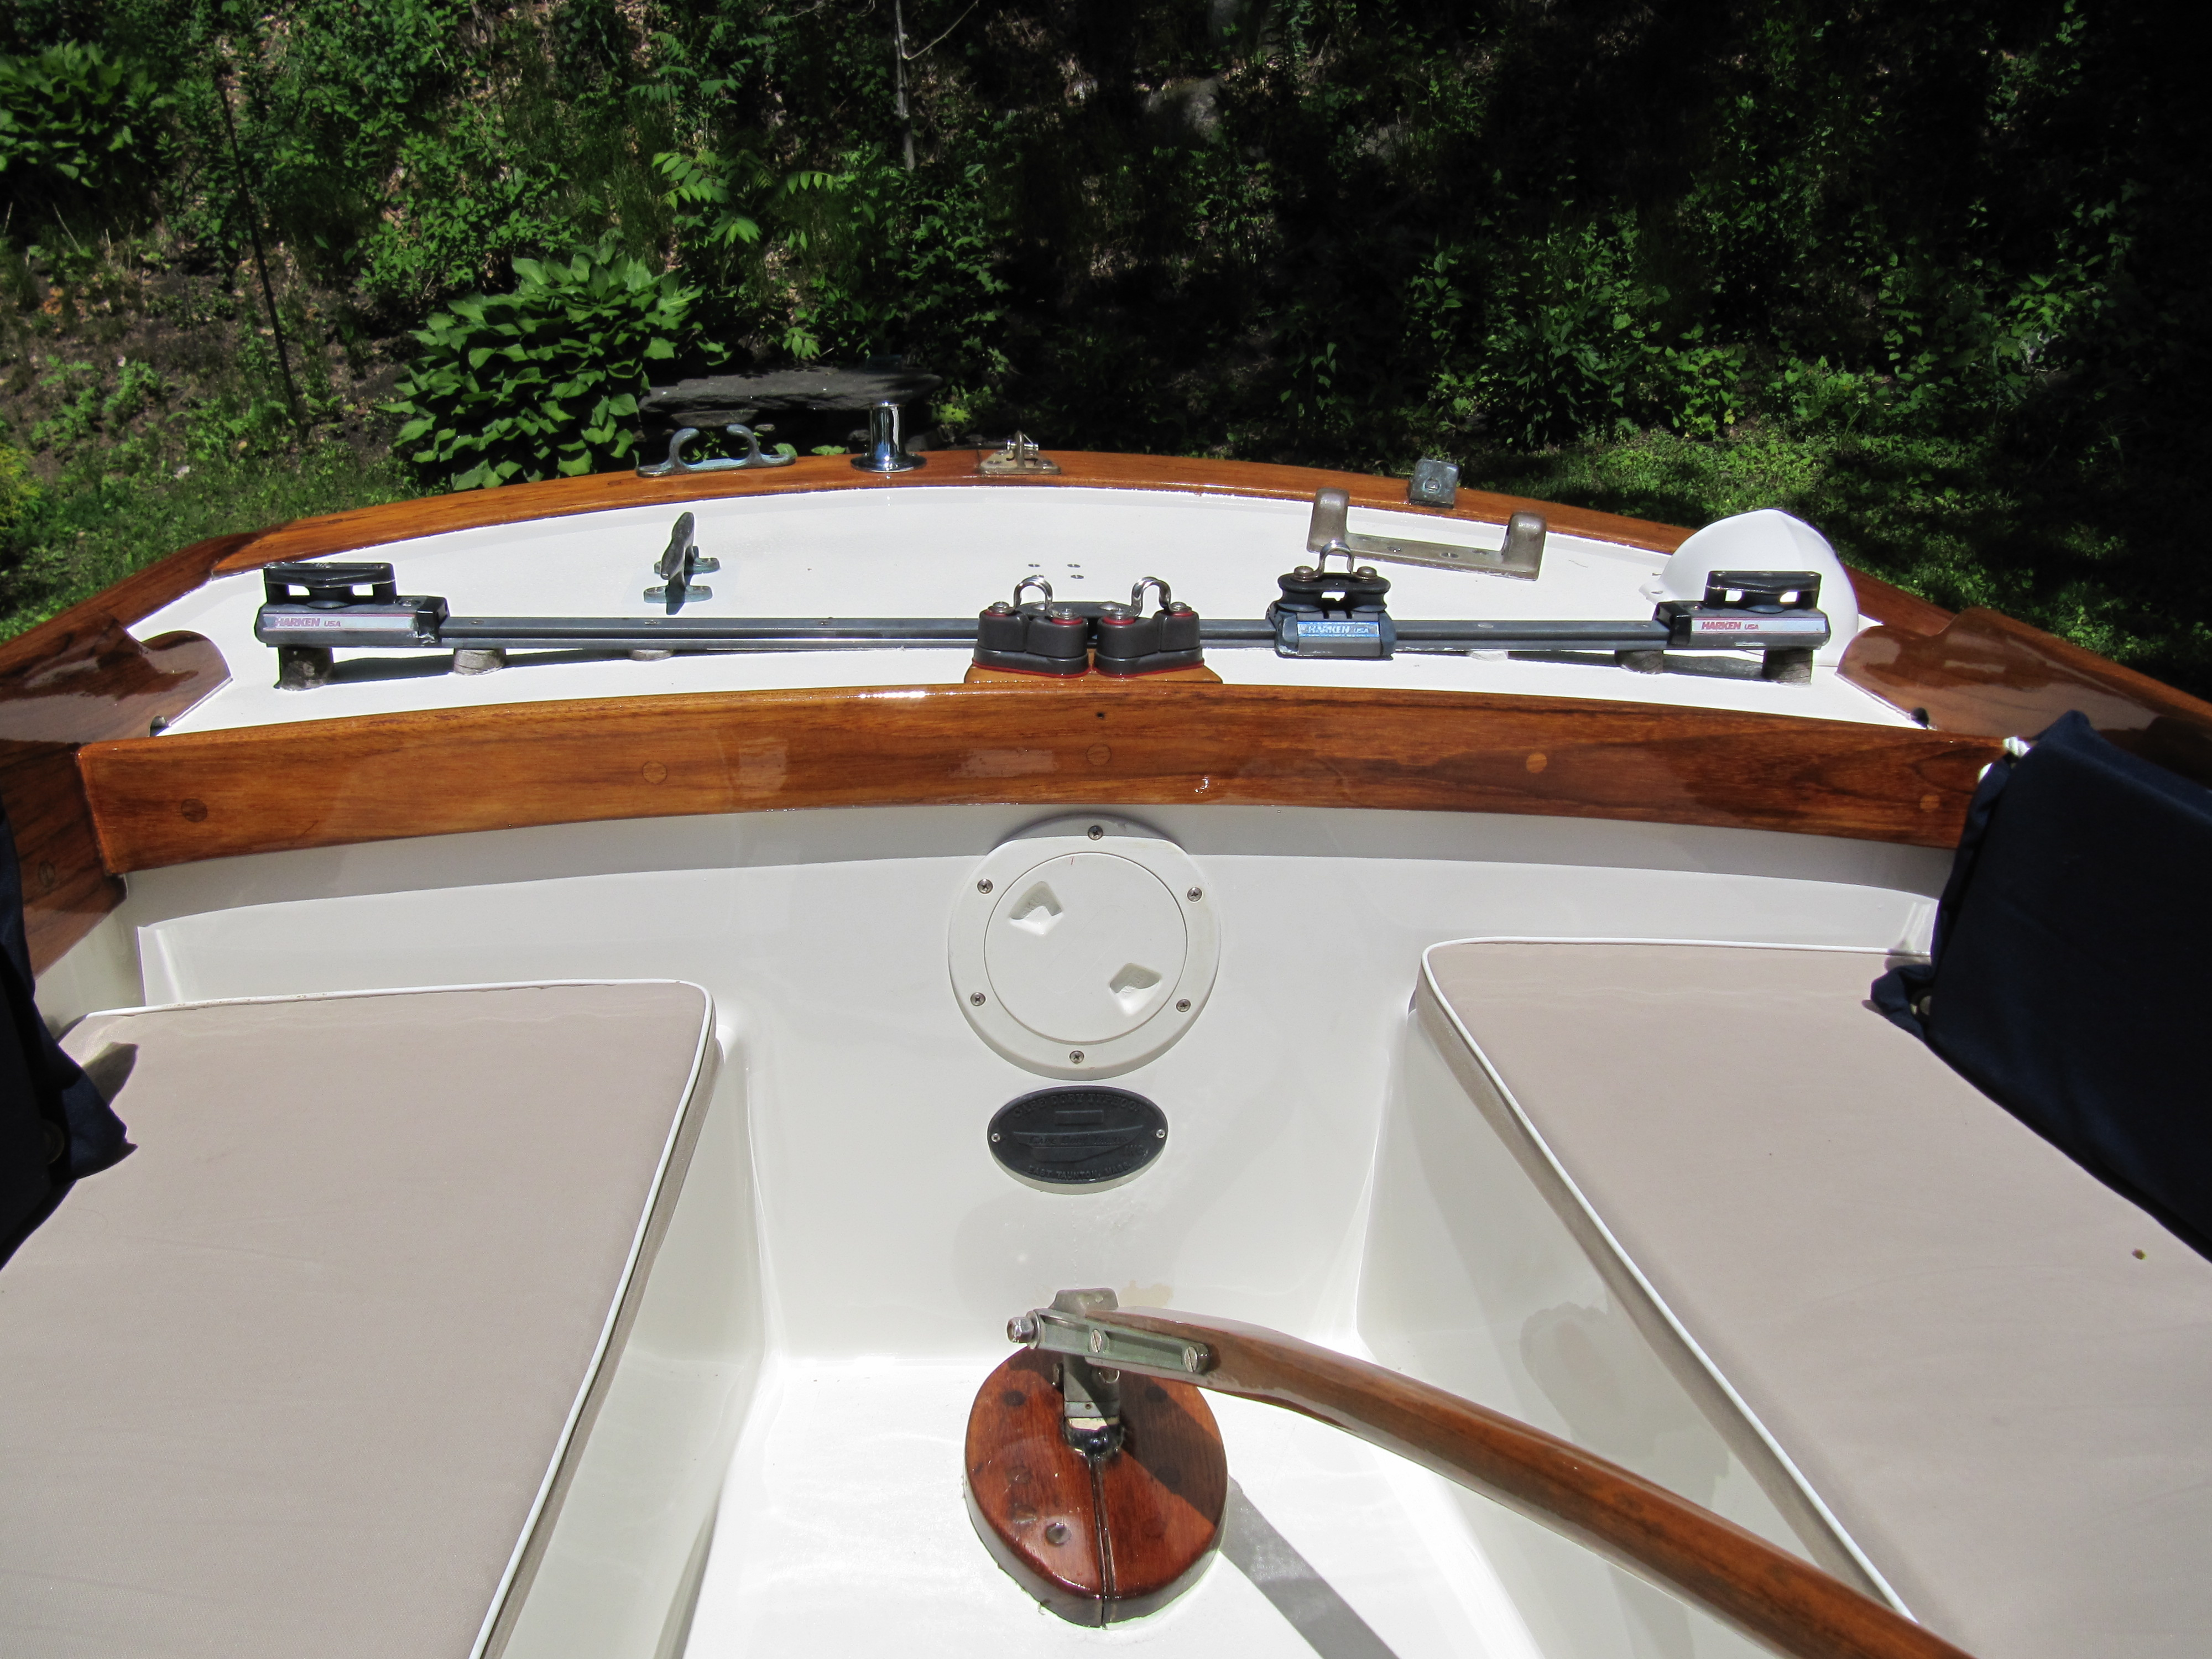 Classic Sailboat Shop | Specializing in the sale of small classic